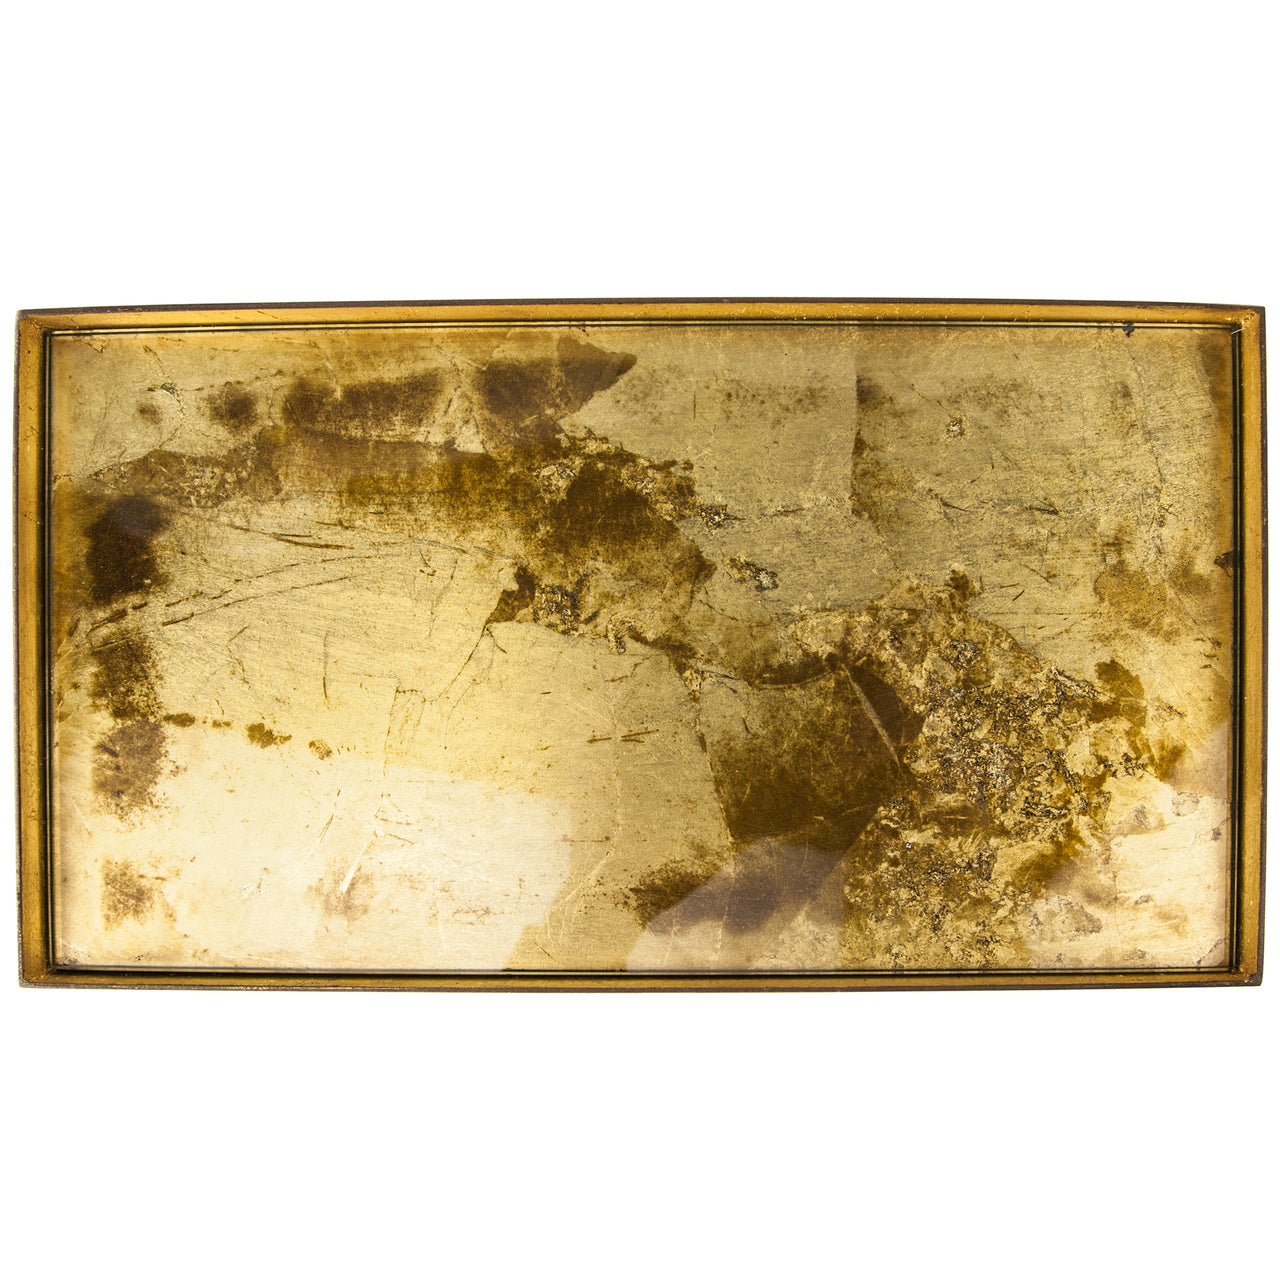 Gold Foil 2 Drink Glass Tray | The Hour Shop Home Bar Decor